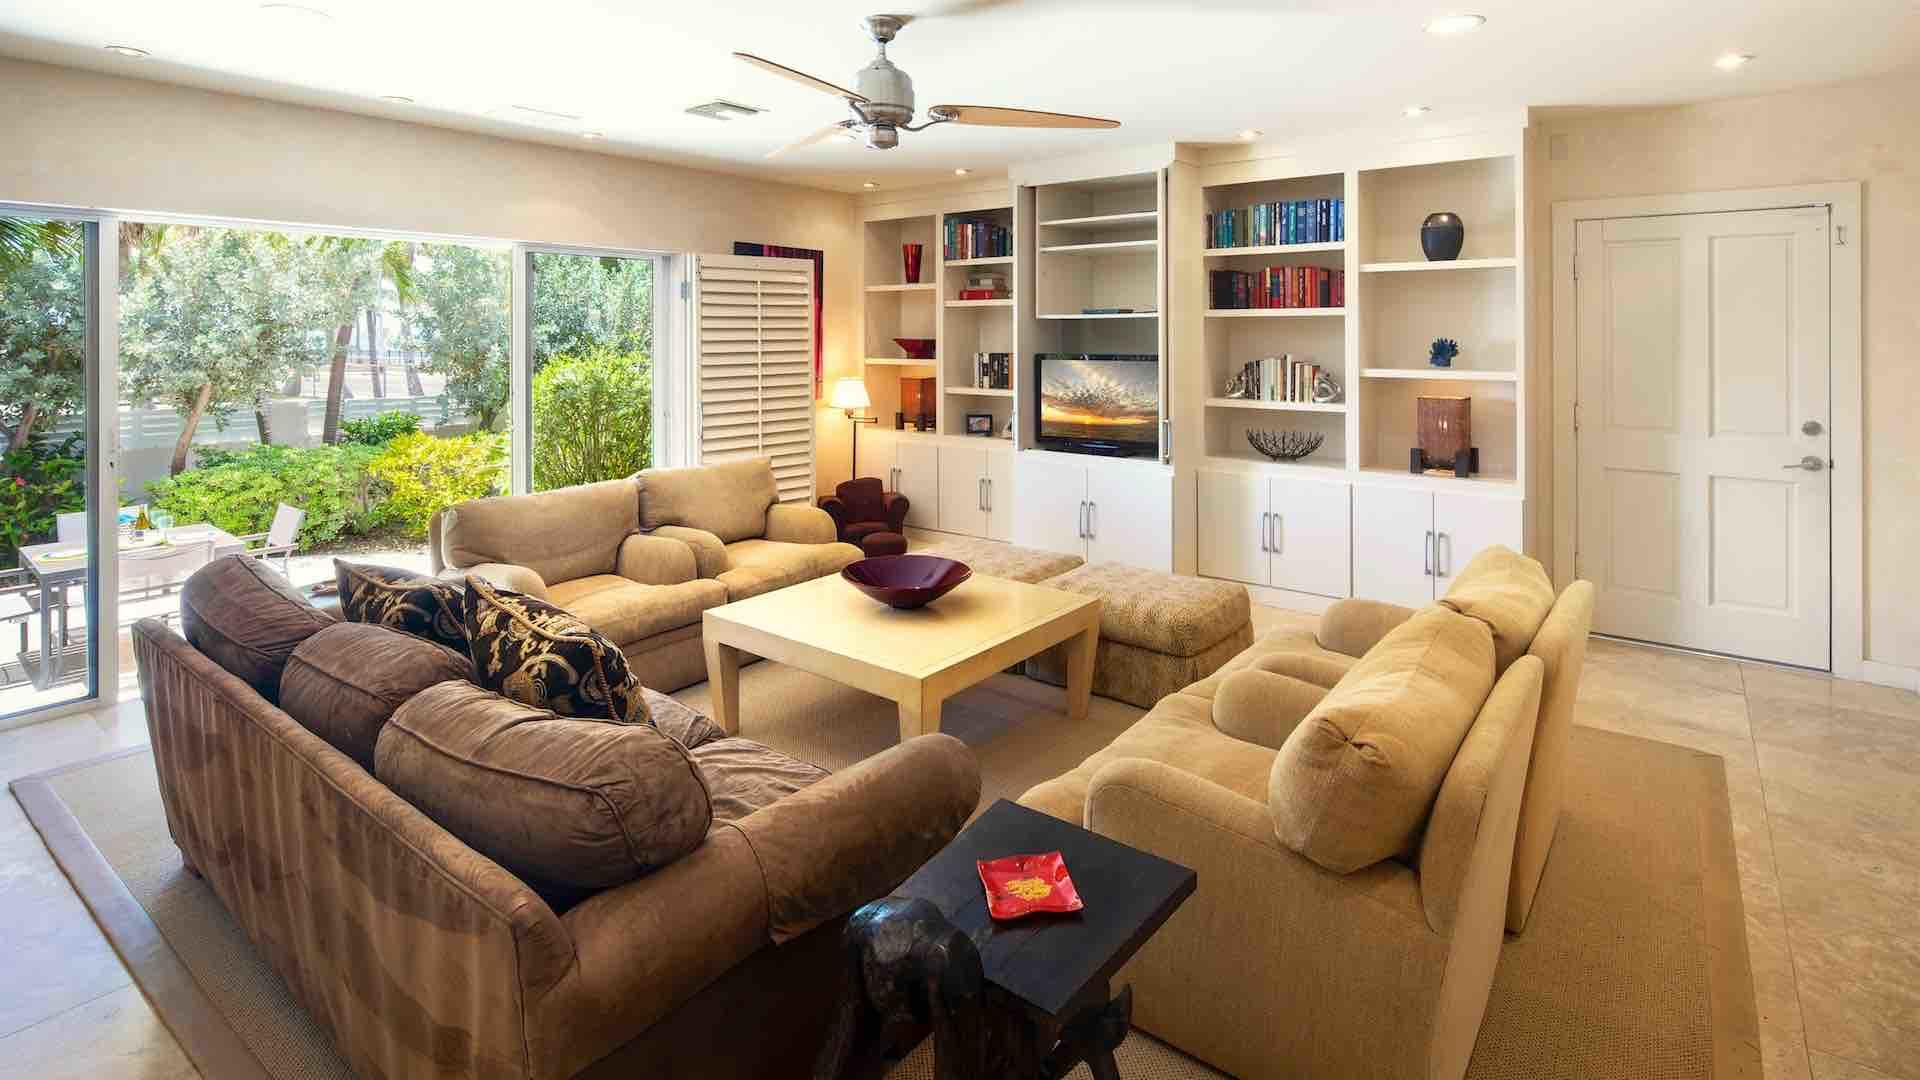 The living room has a large flat screen TV, overhead fan and large window wall…